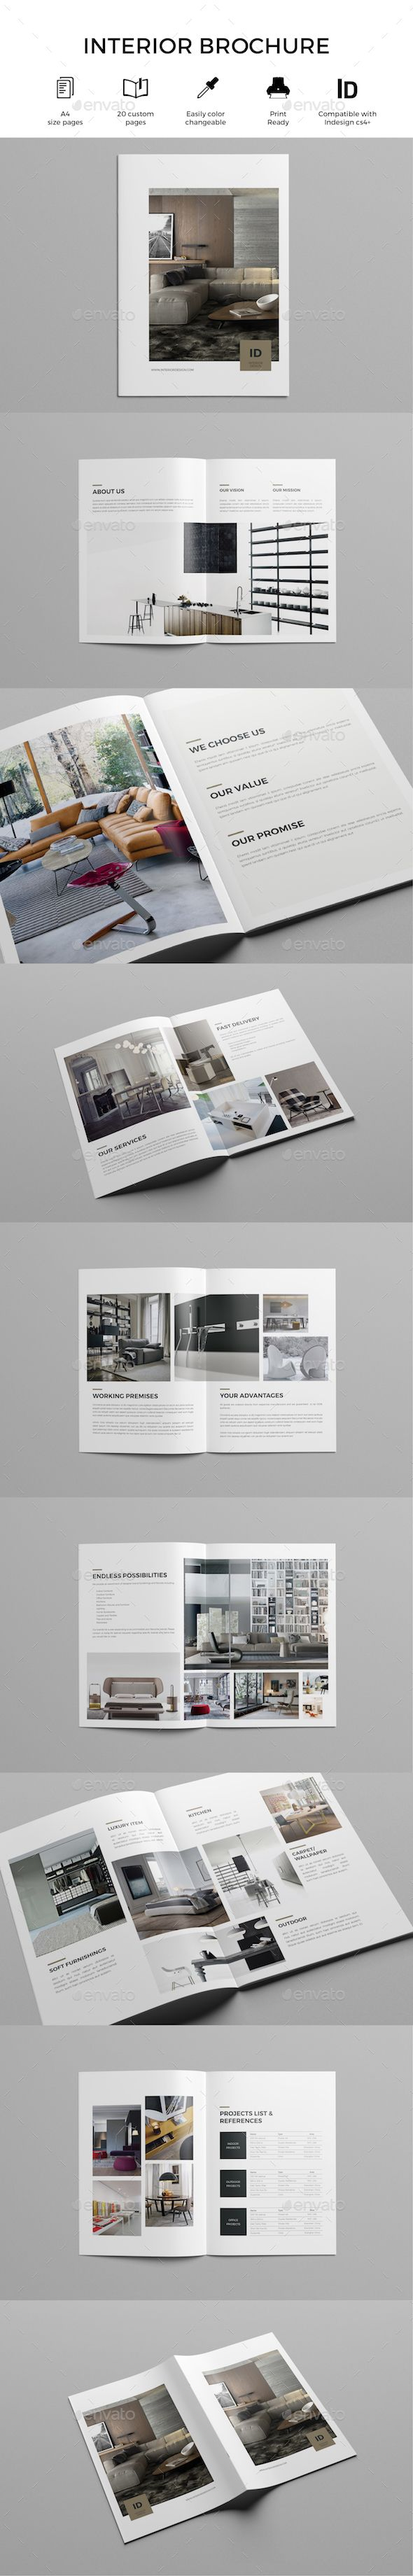 Interior Design Brochure Template InDesign INDD Download Here Graphicriver